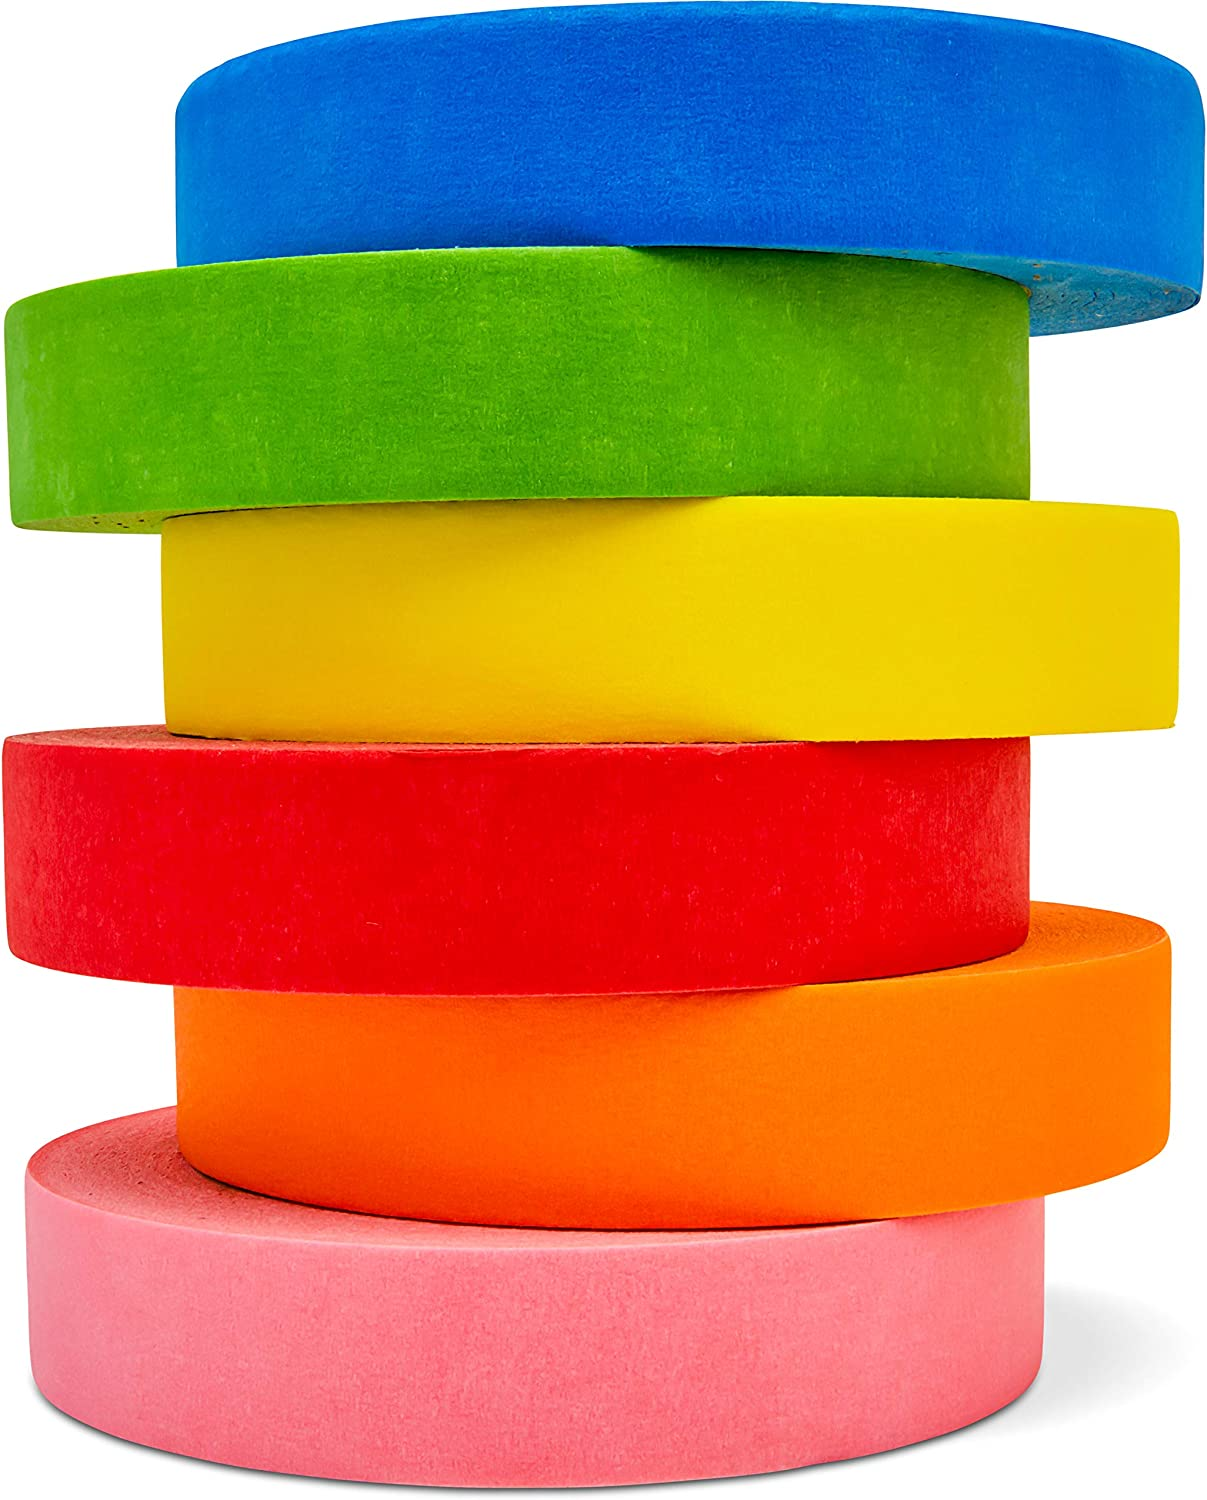 Colored Masking Tape, 6 Extra Long Rolls of Bright Colored Art Tape for Kids, for Crafts, Labeling, and Office Supplies, 1 inch by 180 feet Per Roll